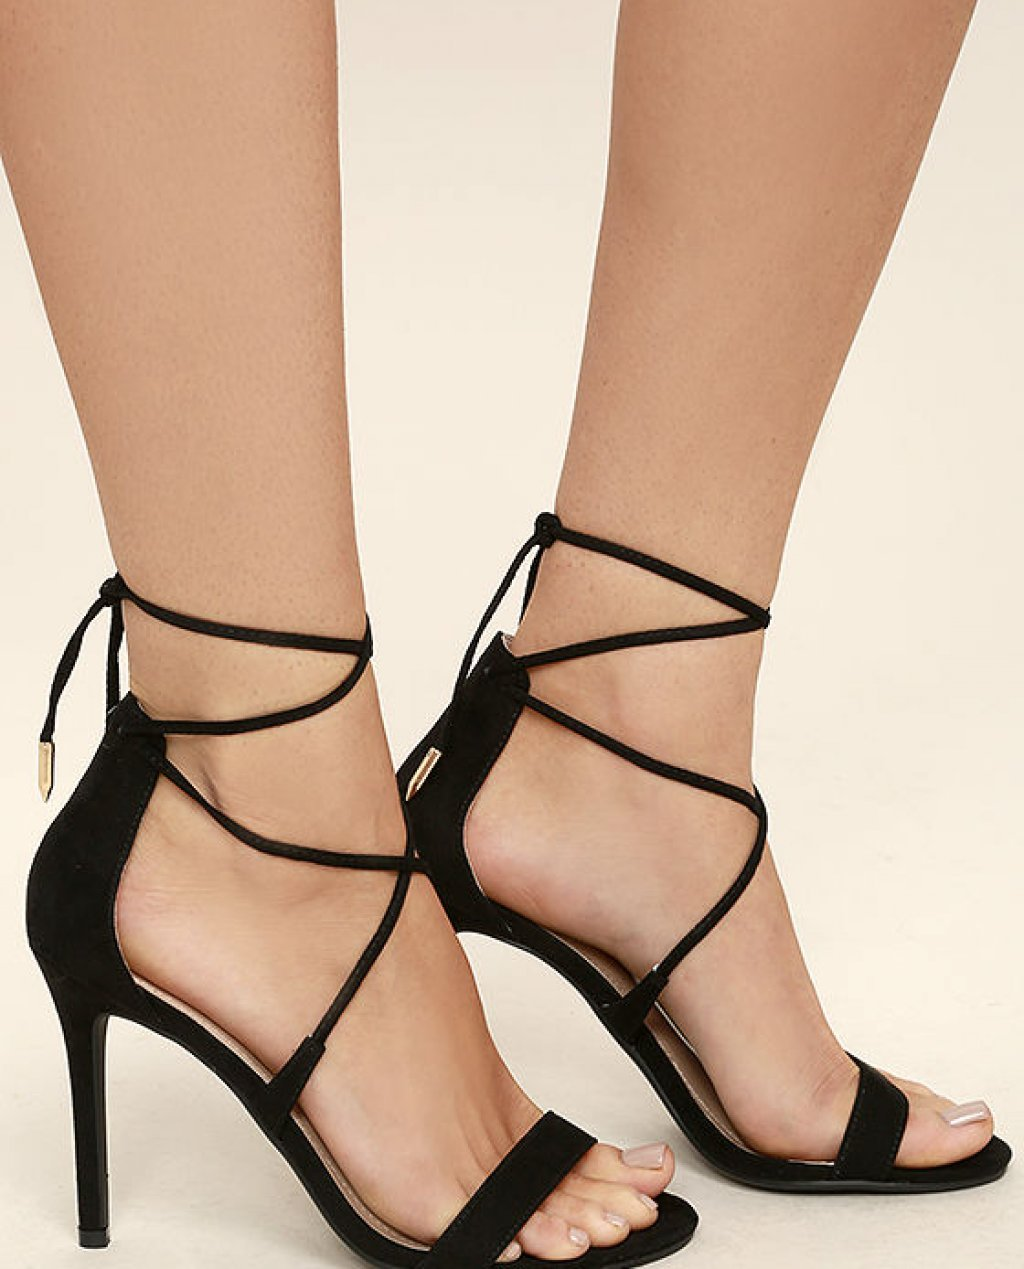 Aimee Black Suede Lace-Up Heels